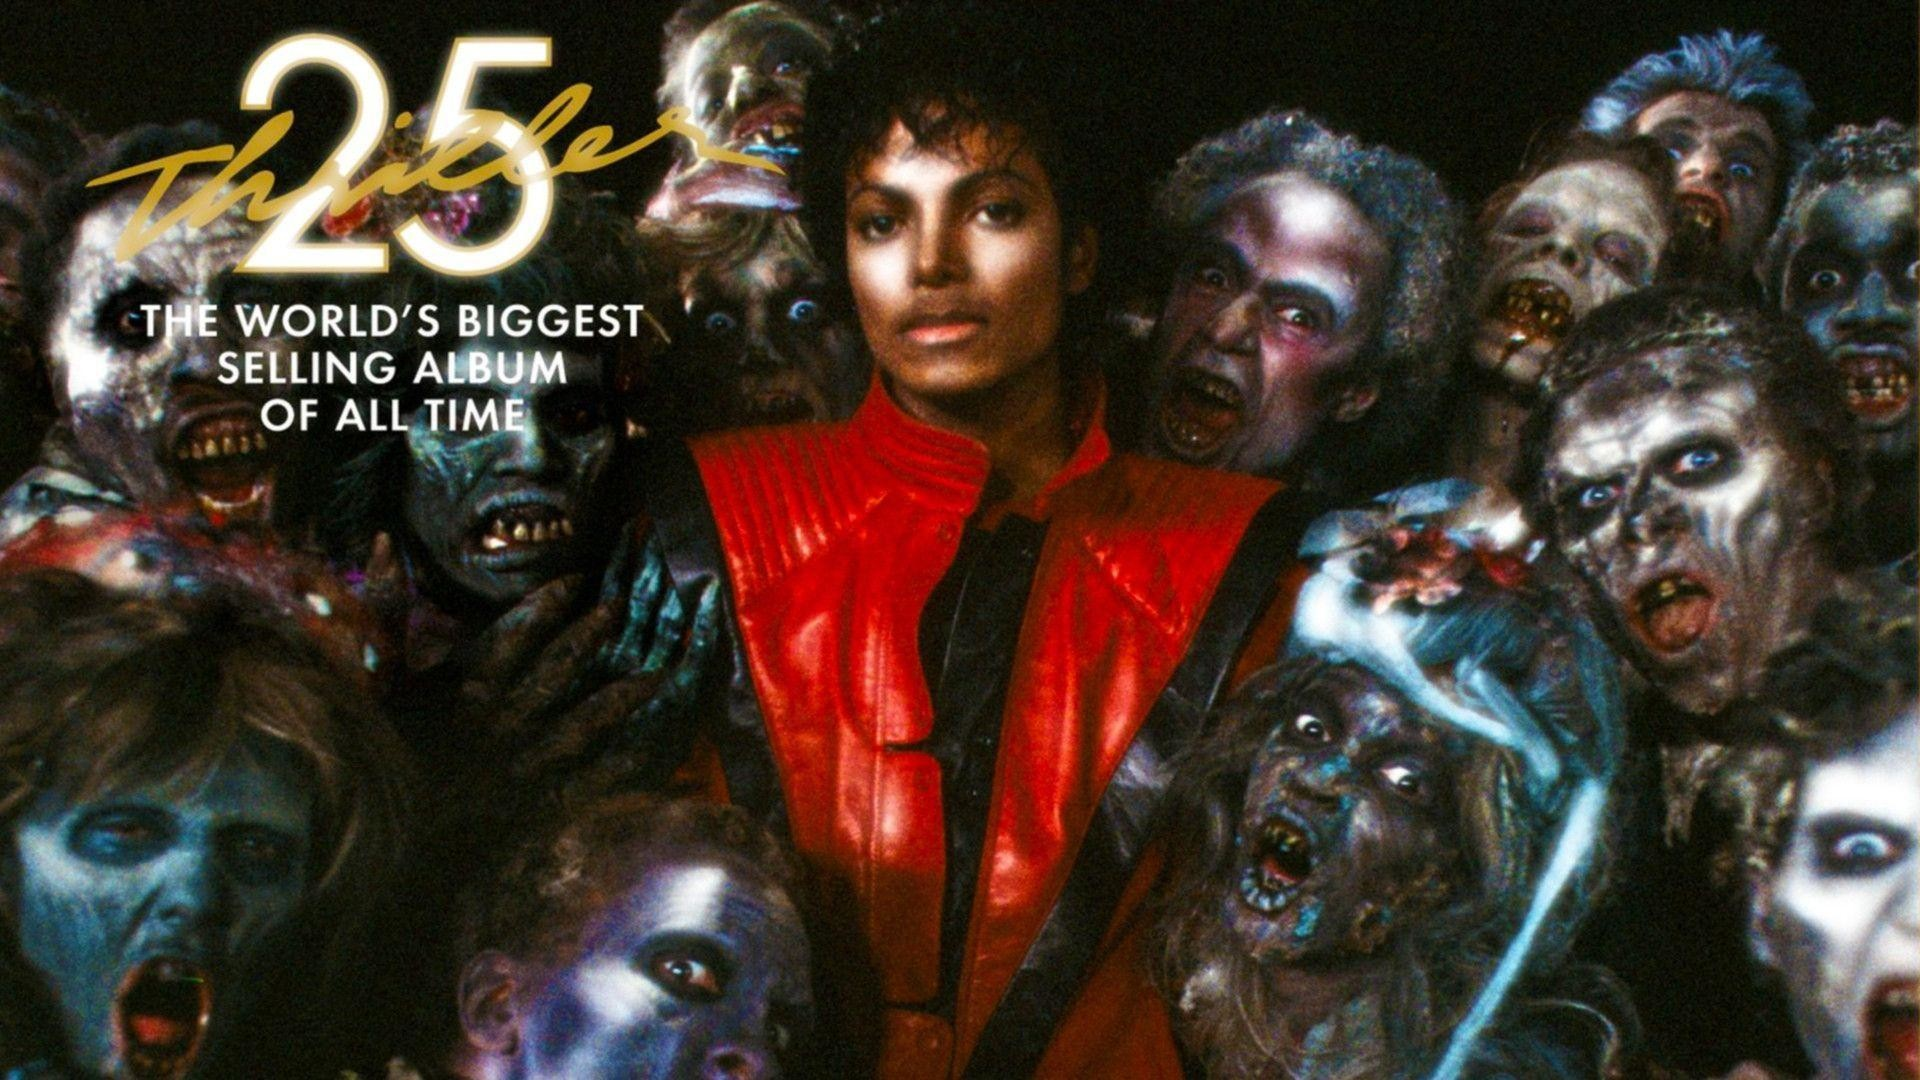 1920x1080 Michael Jackson Thriller Wallpaper Hd Images 3 HD Wallpapers .